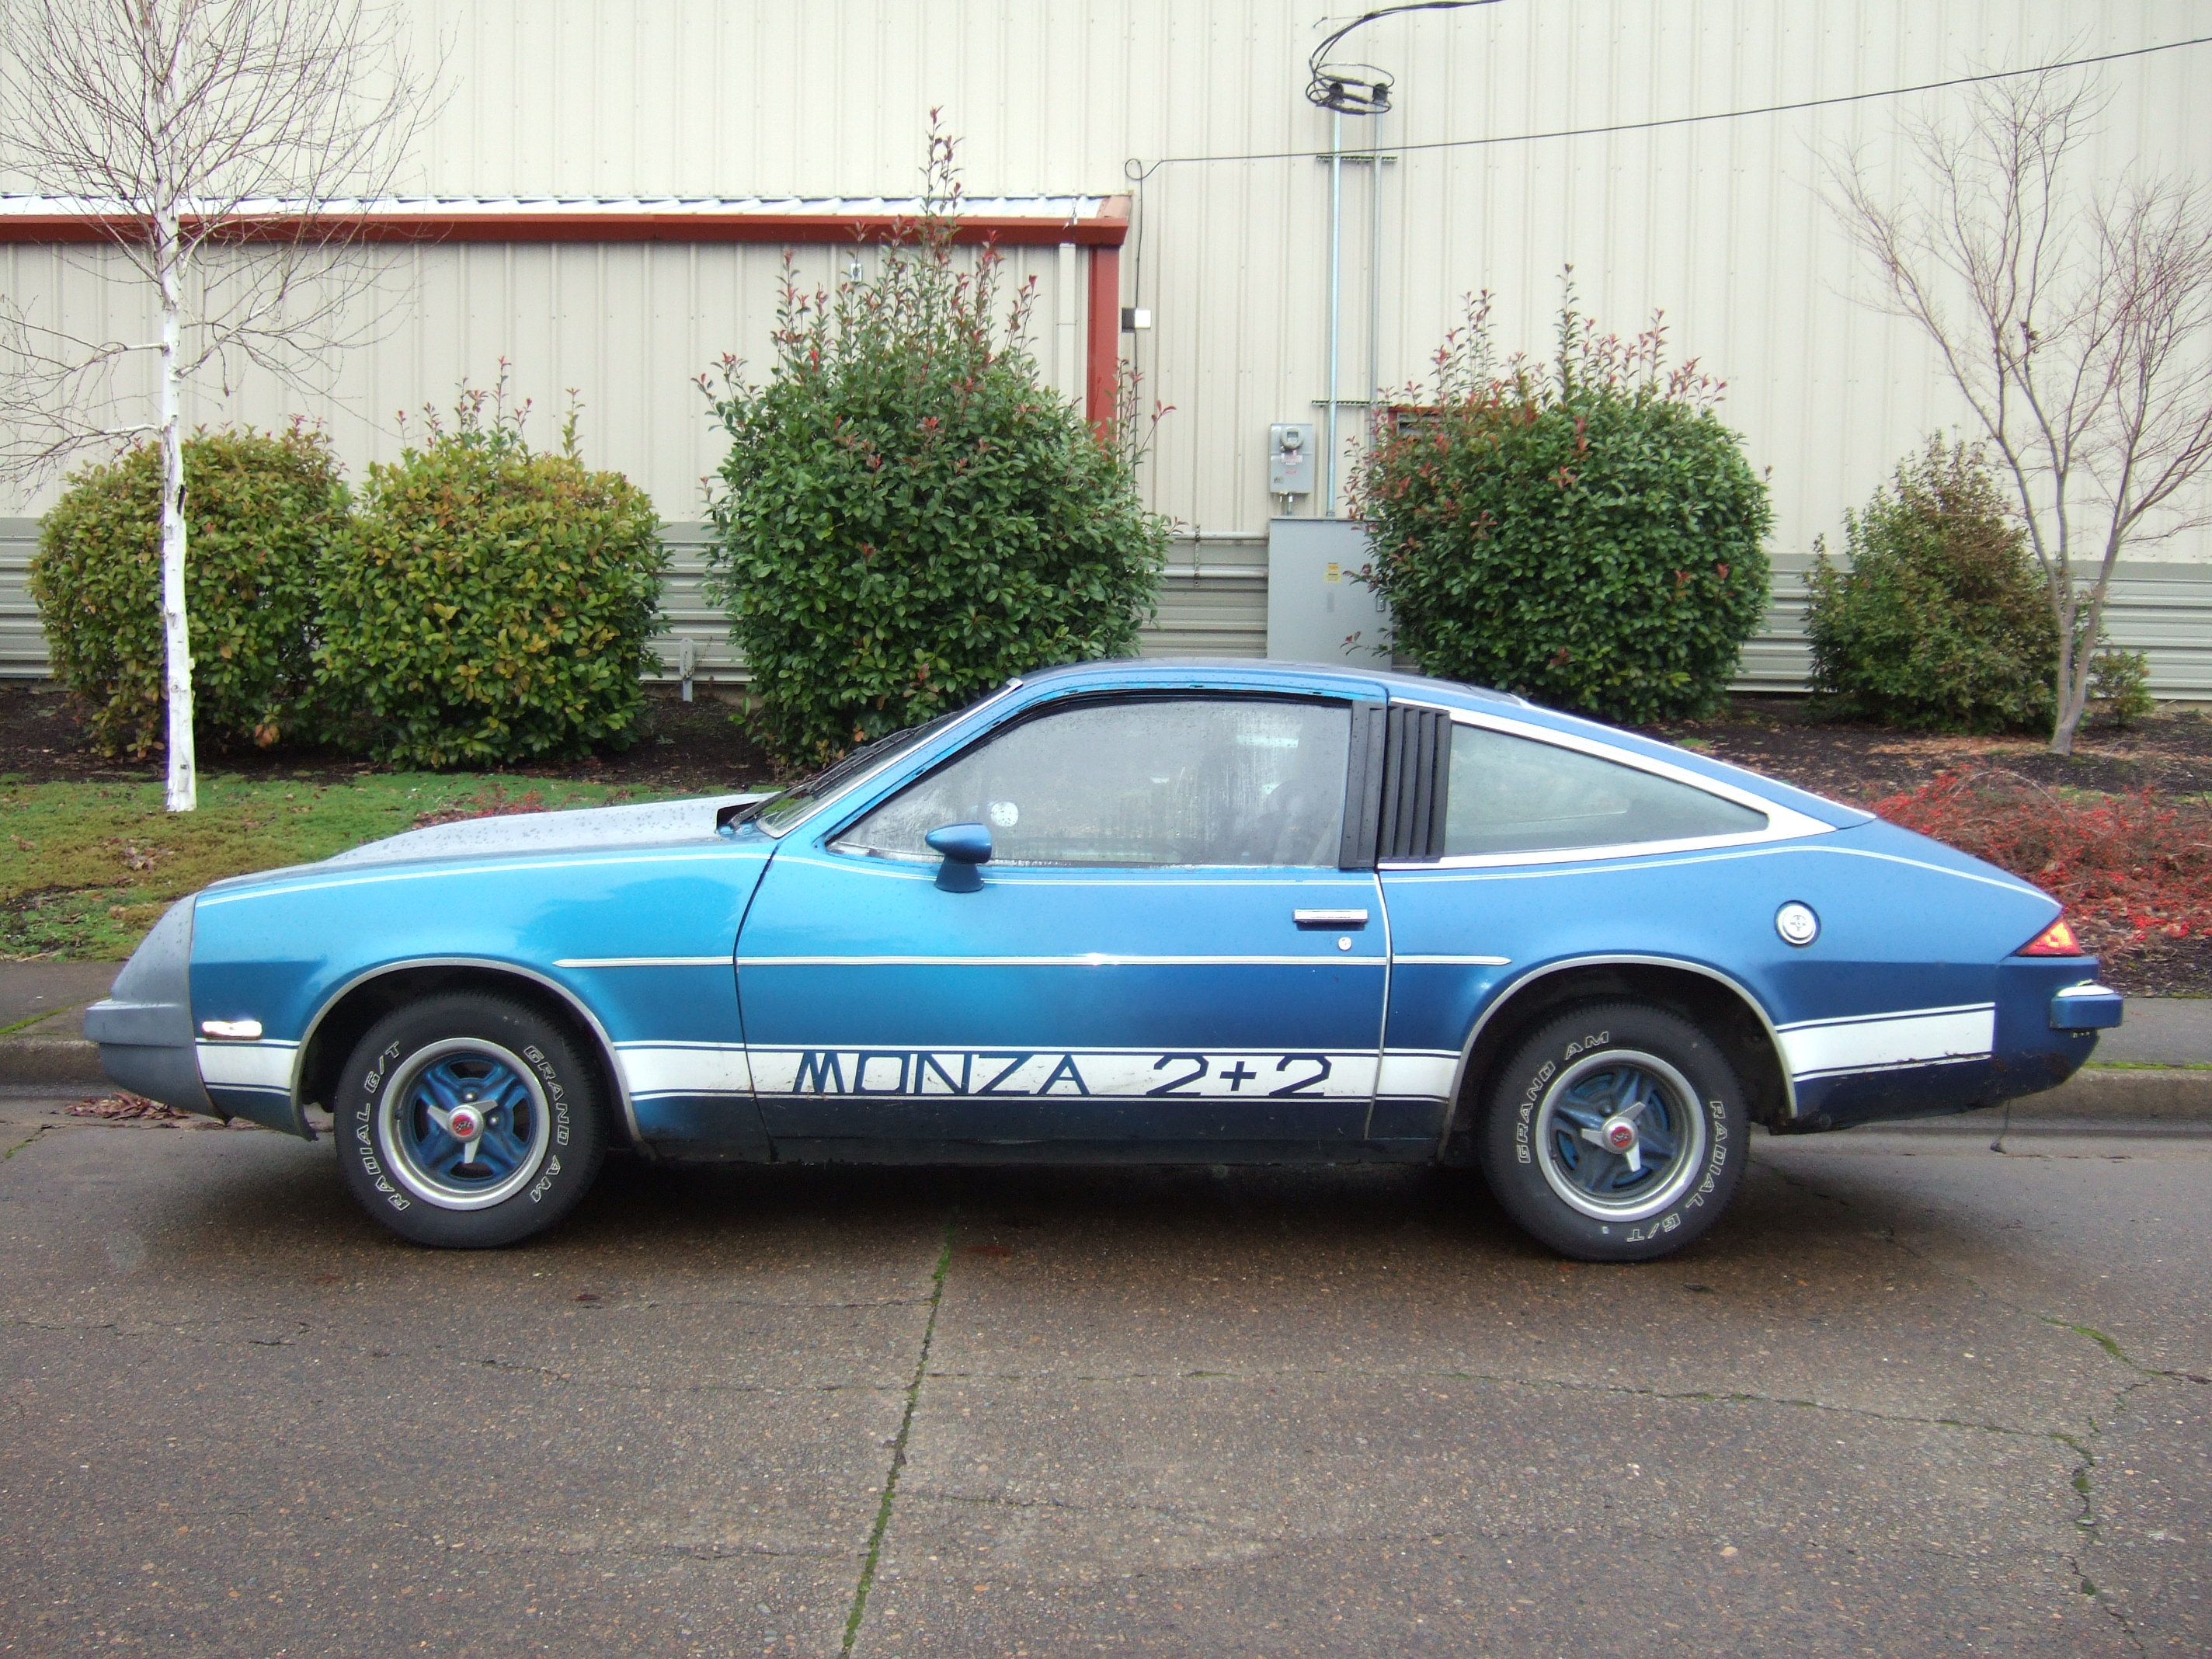 sensores de chevy monza for sale - photo#32